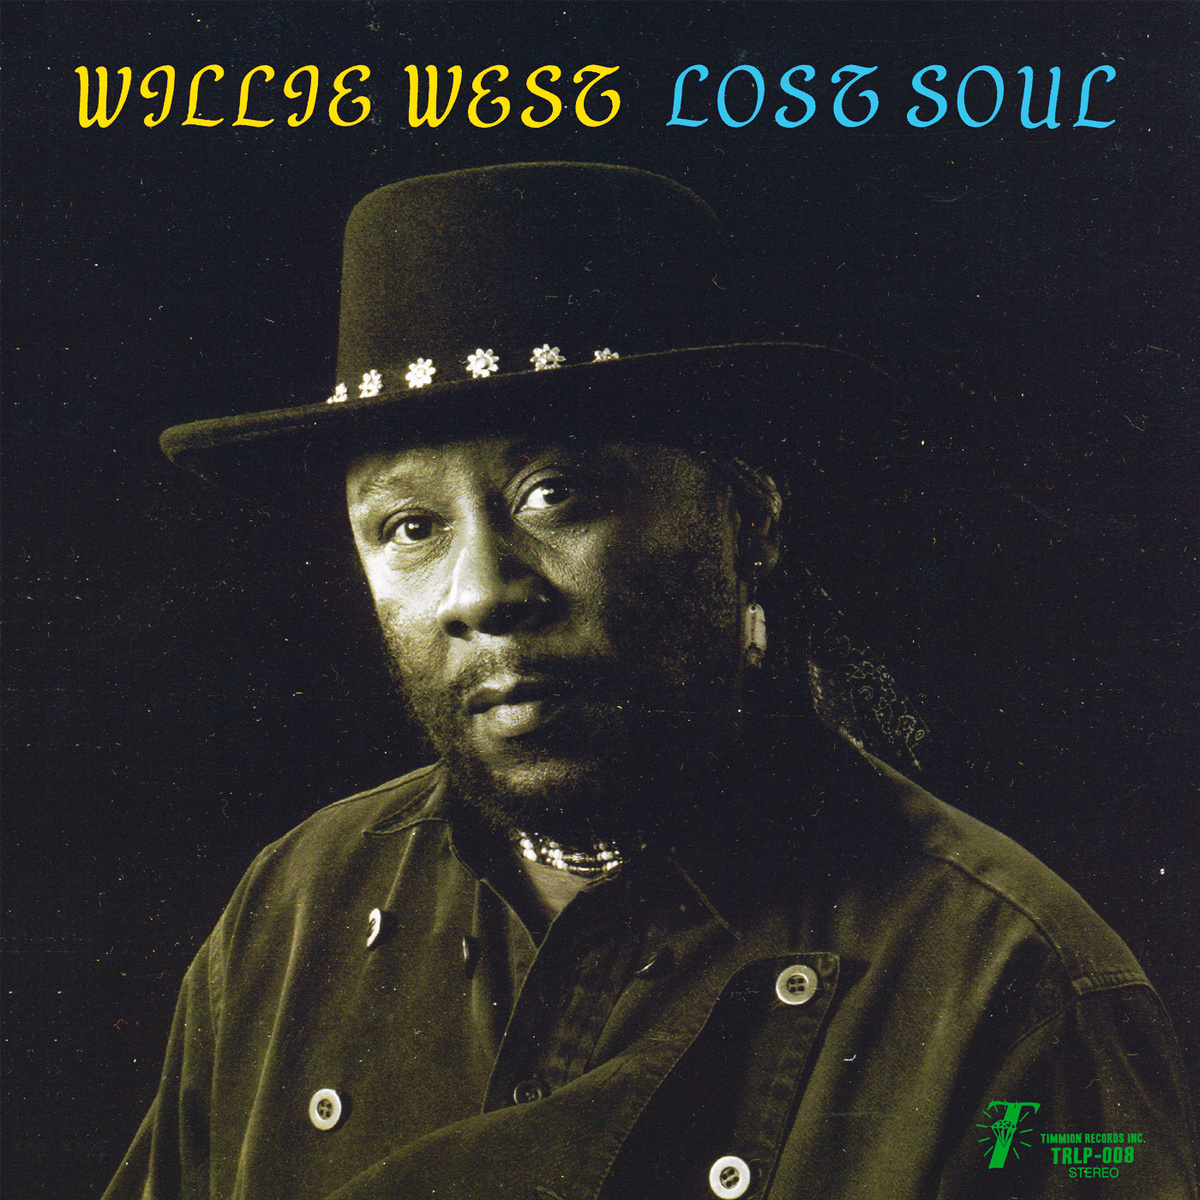 WILLIE WEST : LOST SOUL